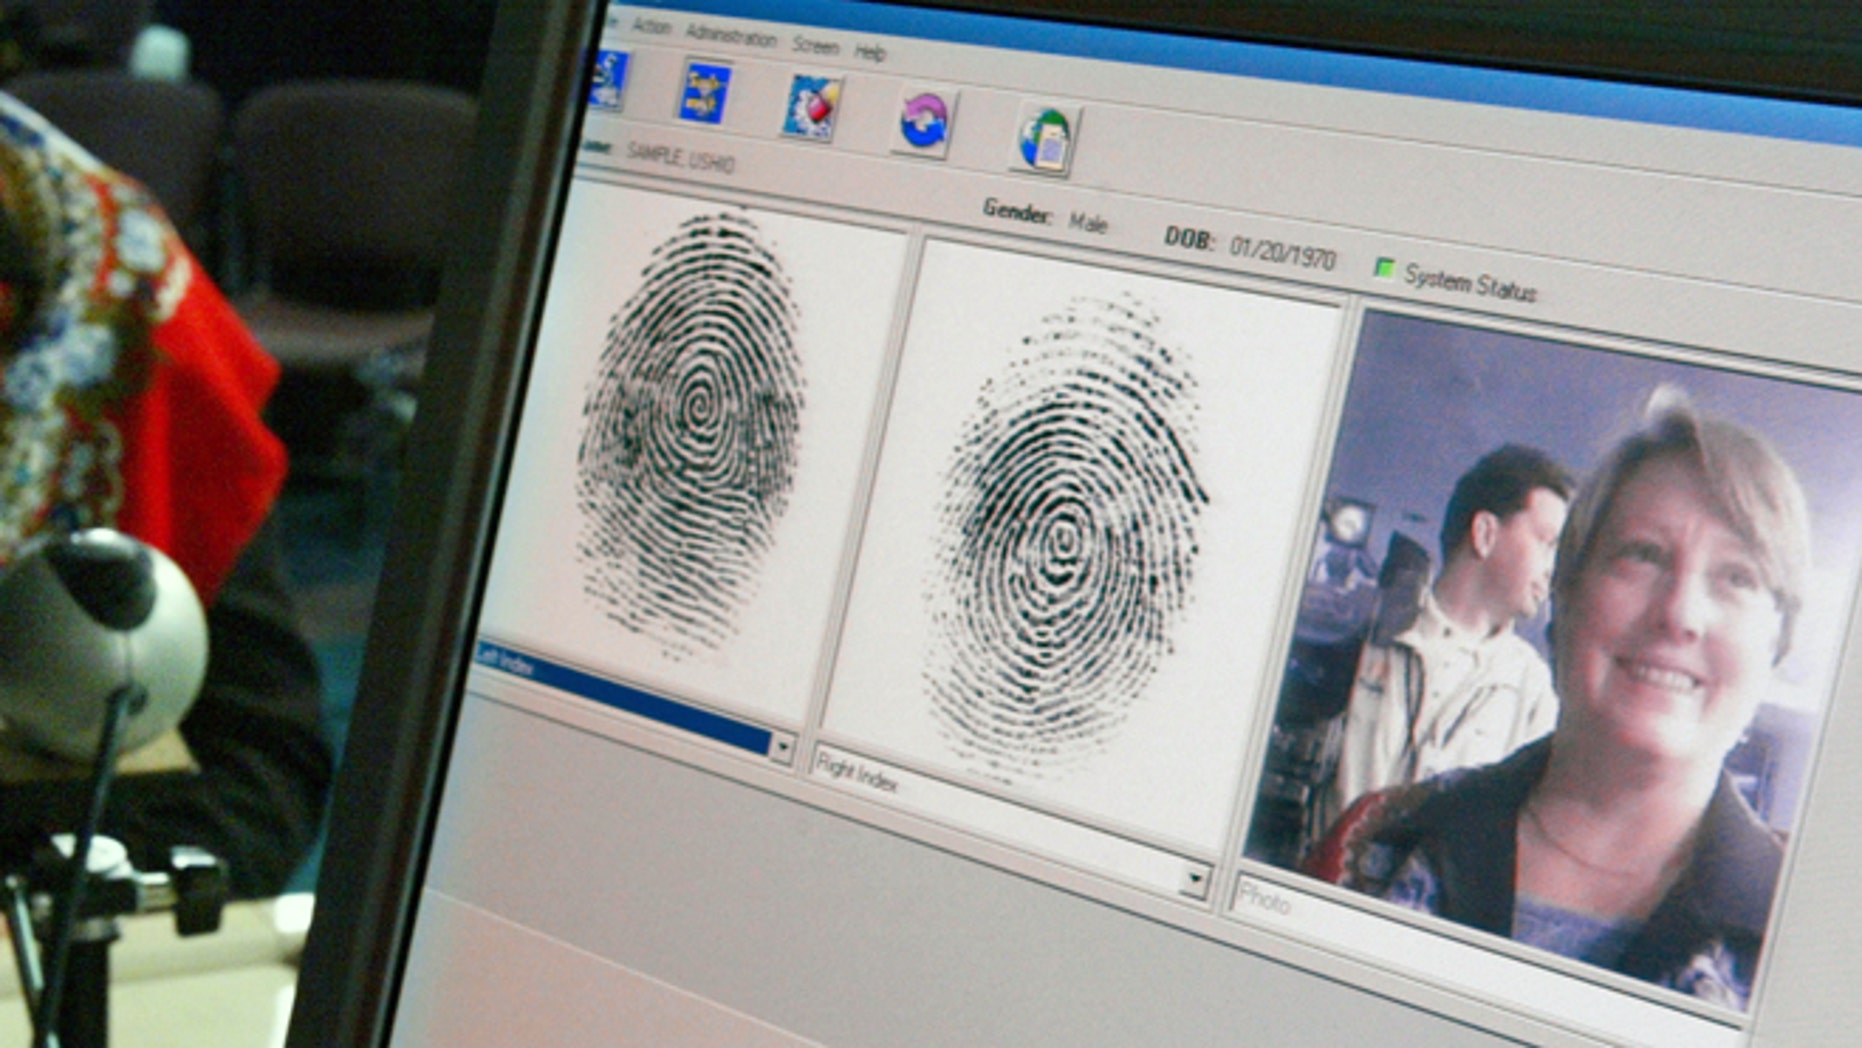 WASHINGTON - OCTOBER 28:  Penelope Smith, of the US-VISIT Program, demonstrates the process of inkless fingerprints scanning during a news conference on the program October 28, 2003 in Washington, DC. The U.S. Department of Homeland Security unveiled the US-VISIT Program, which will capture more complete arrival and departure data, such as fingerprints and mug shots, at airports and seaports from visitors who require a visa to enter the United States.  (Photo by Alex Wong/Getty Images)